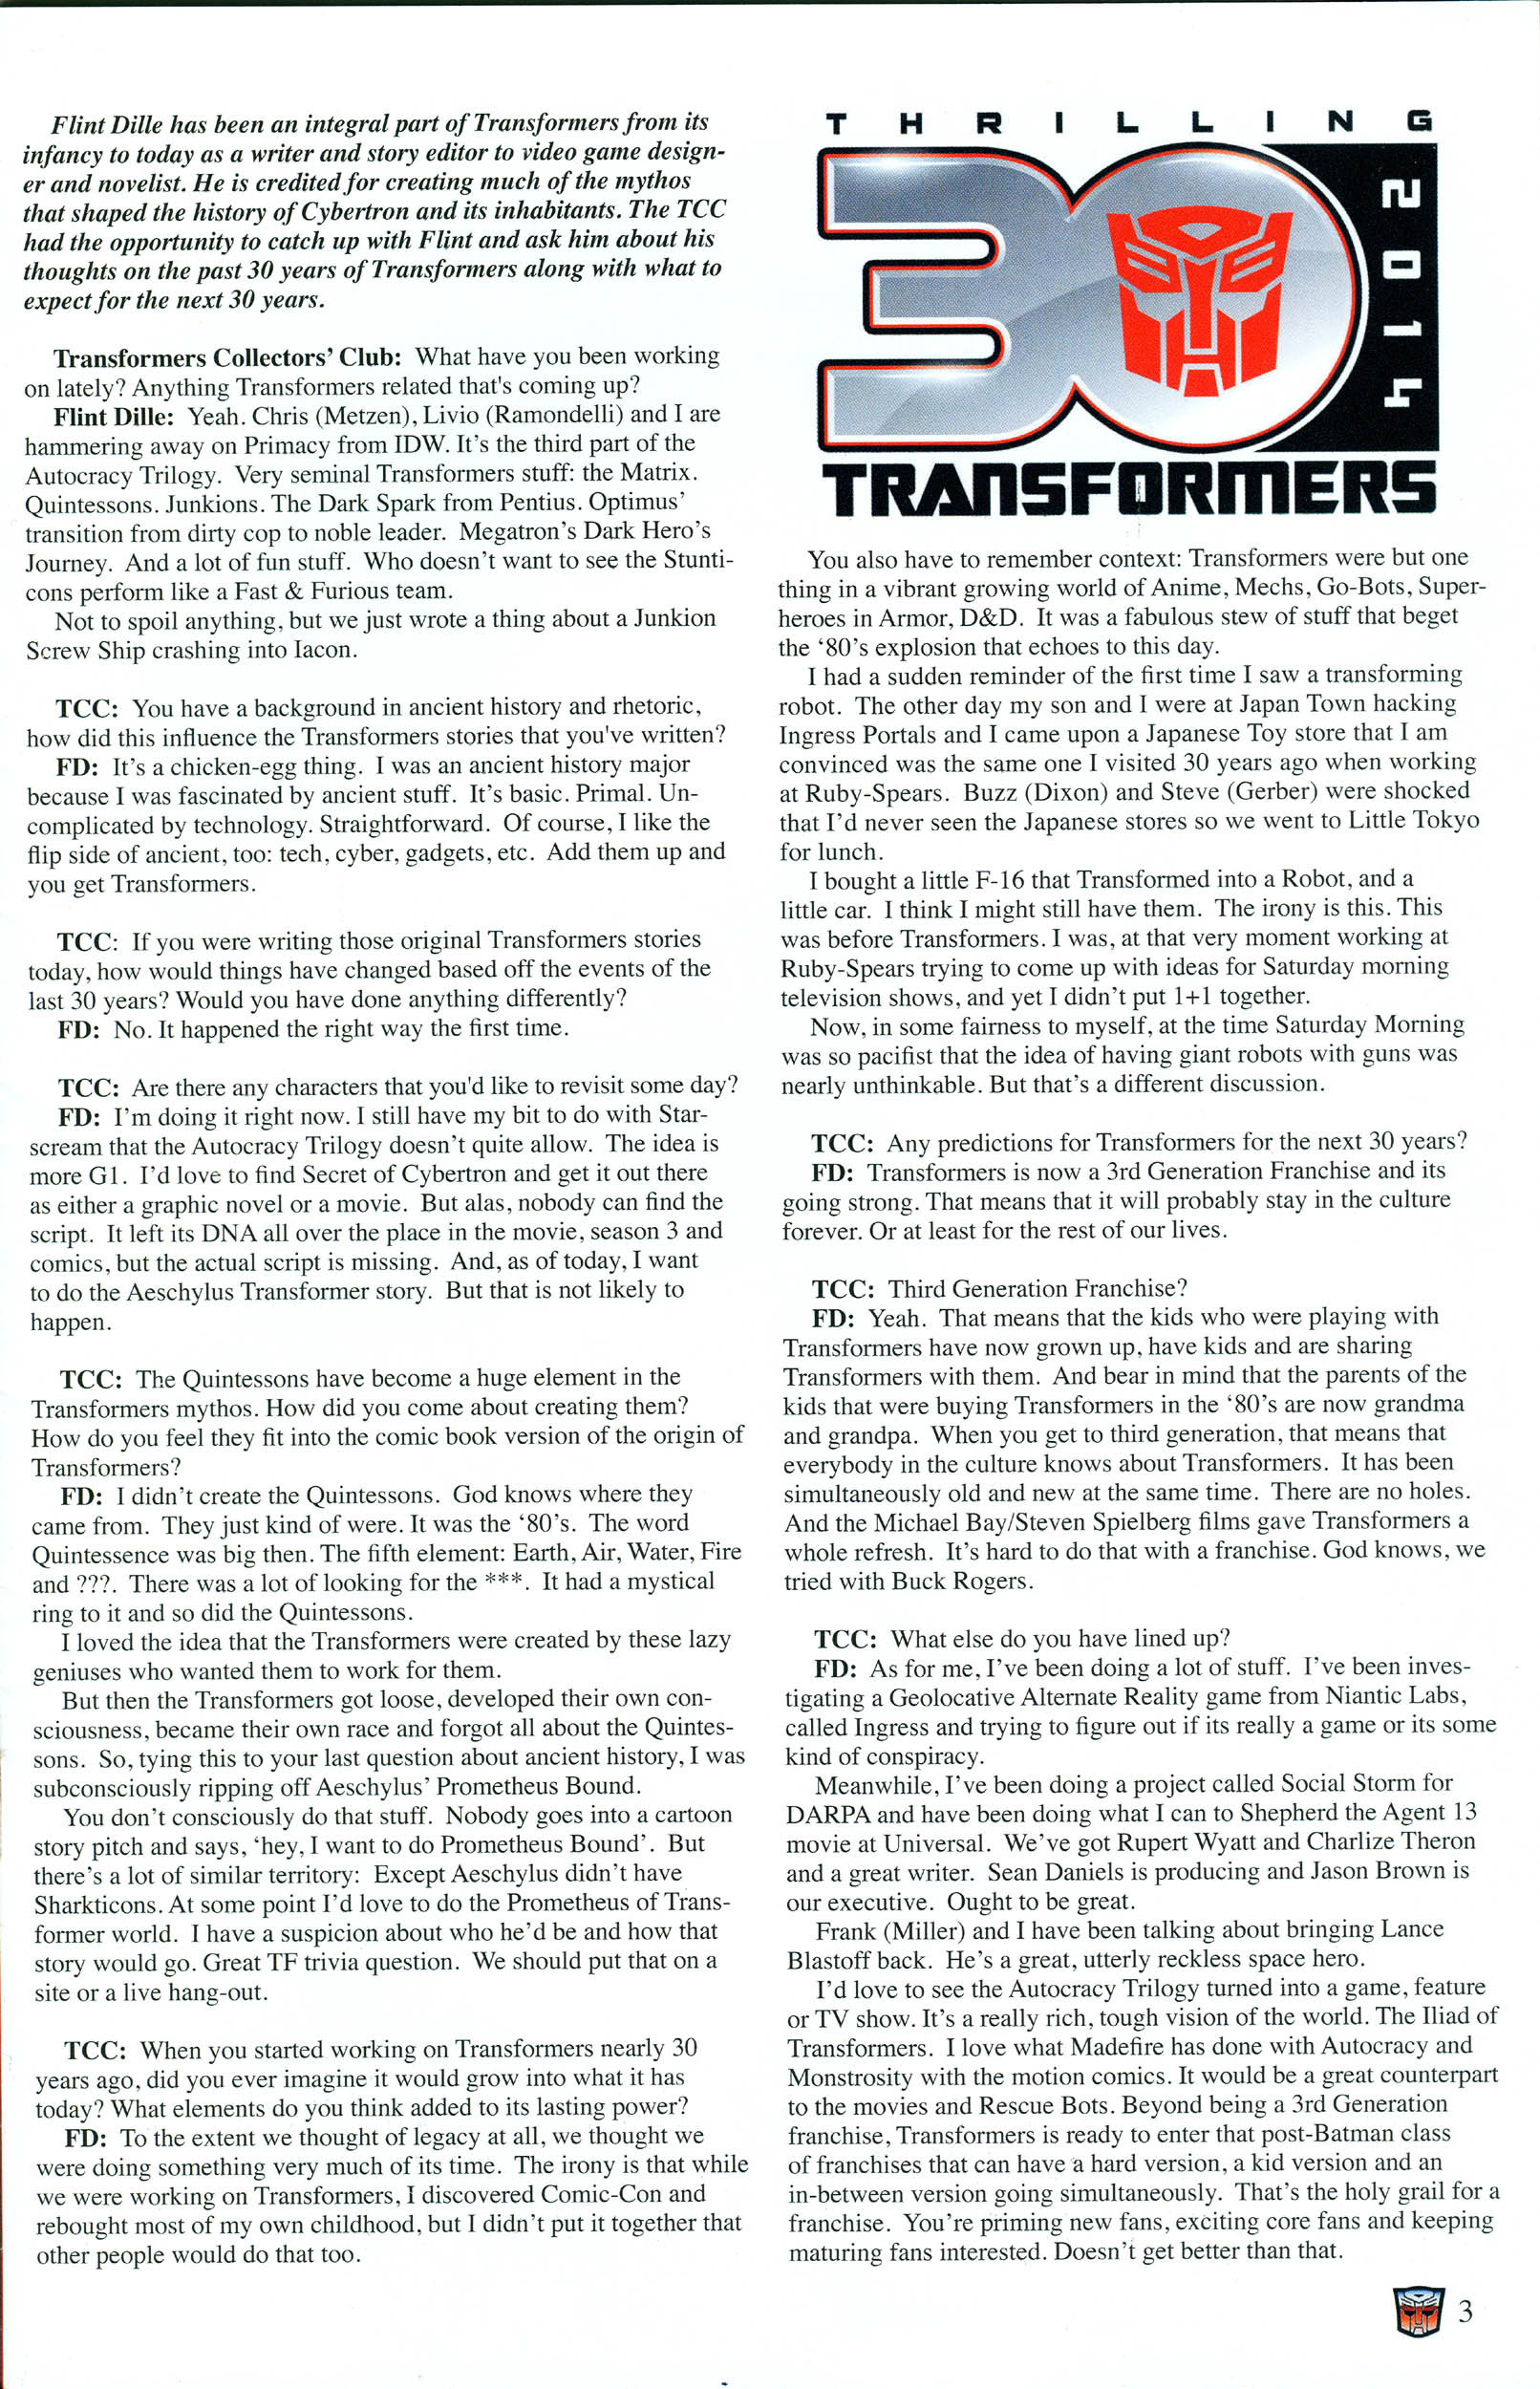 Read online Transformers: Collectors' Club comic -  Issue #55 - 3